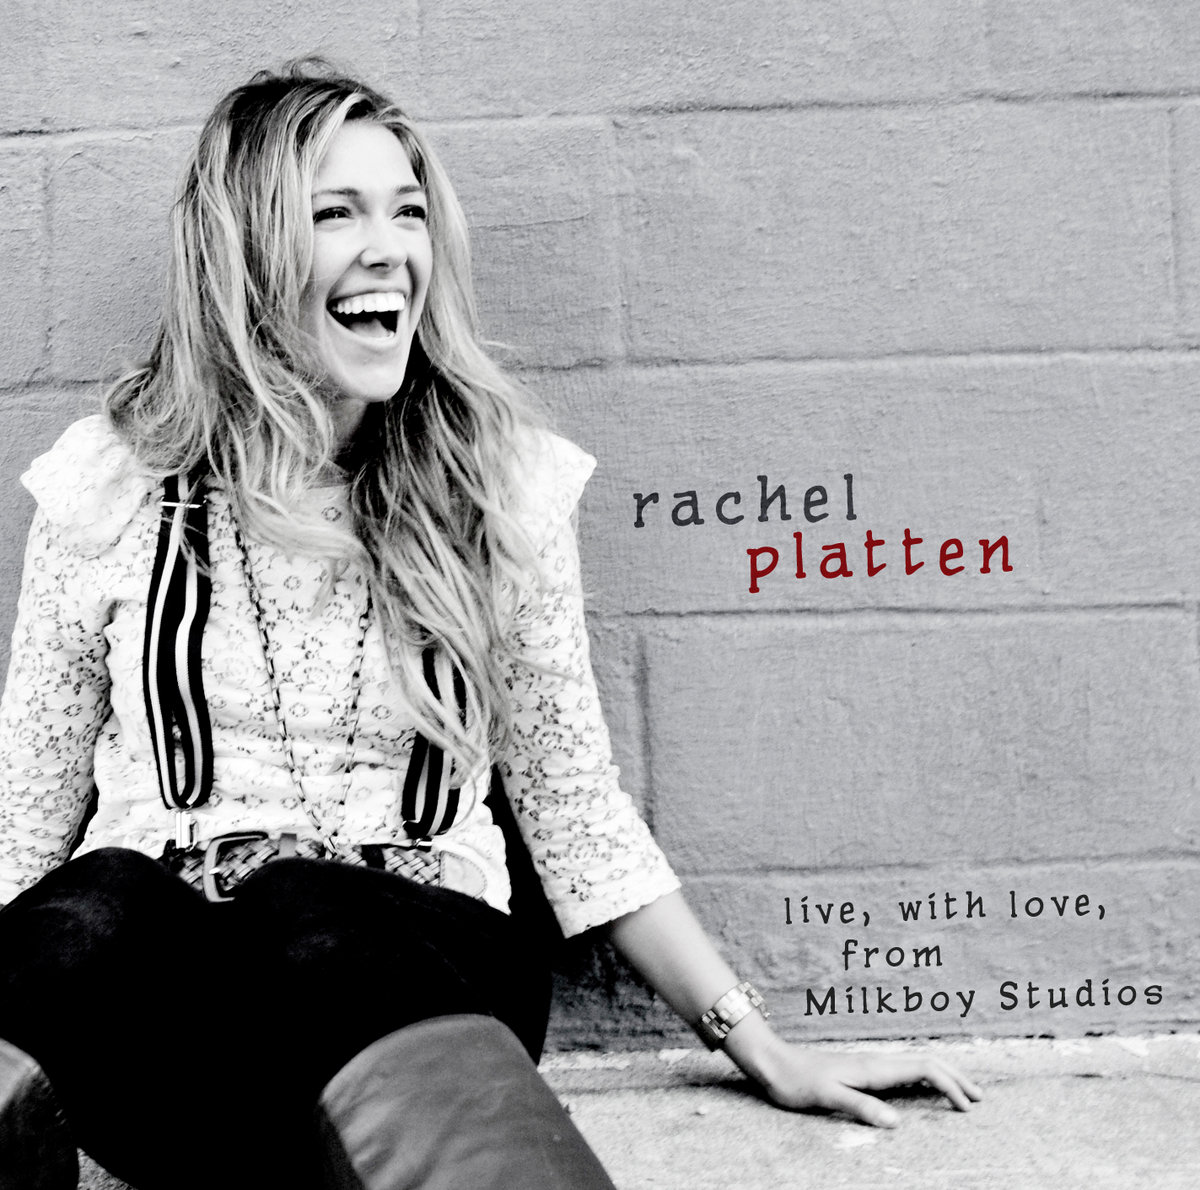 Platten little mp3 download rachel light